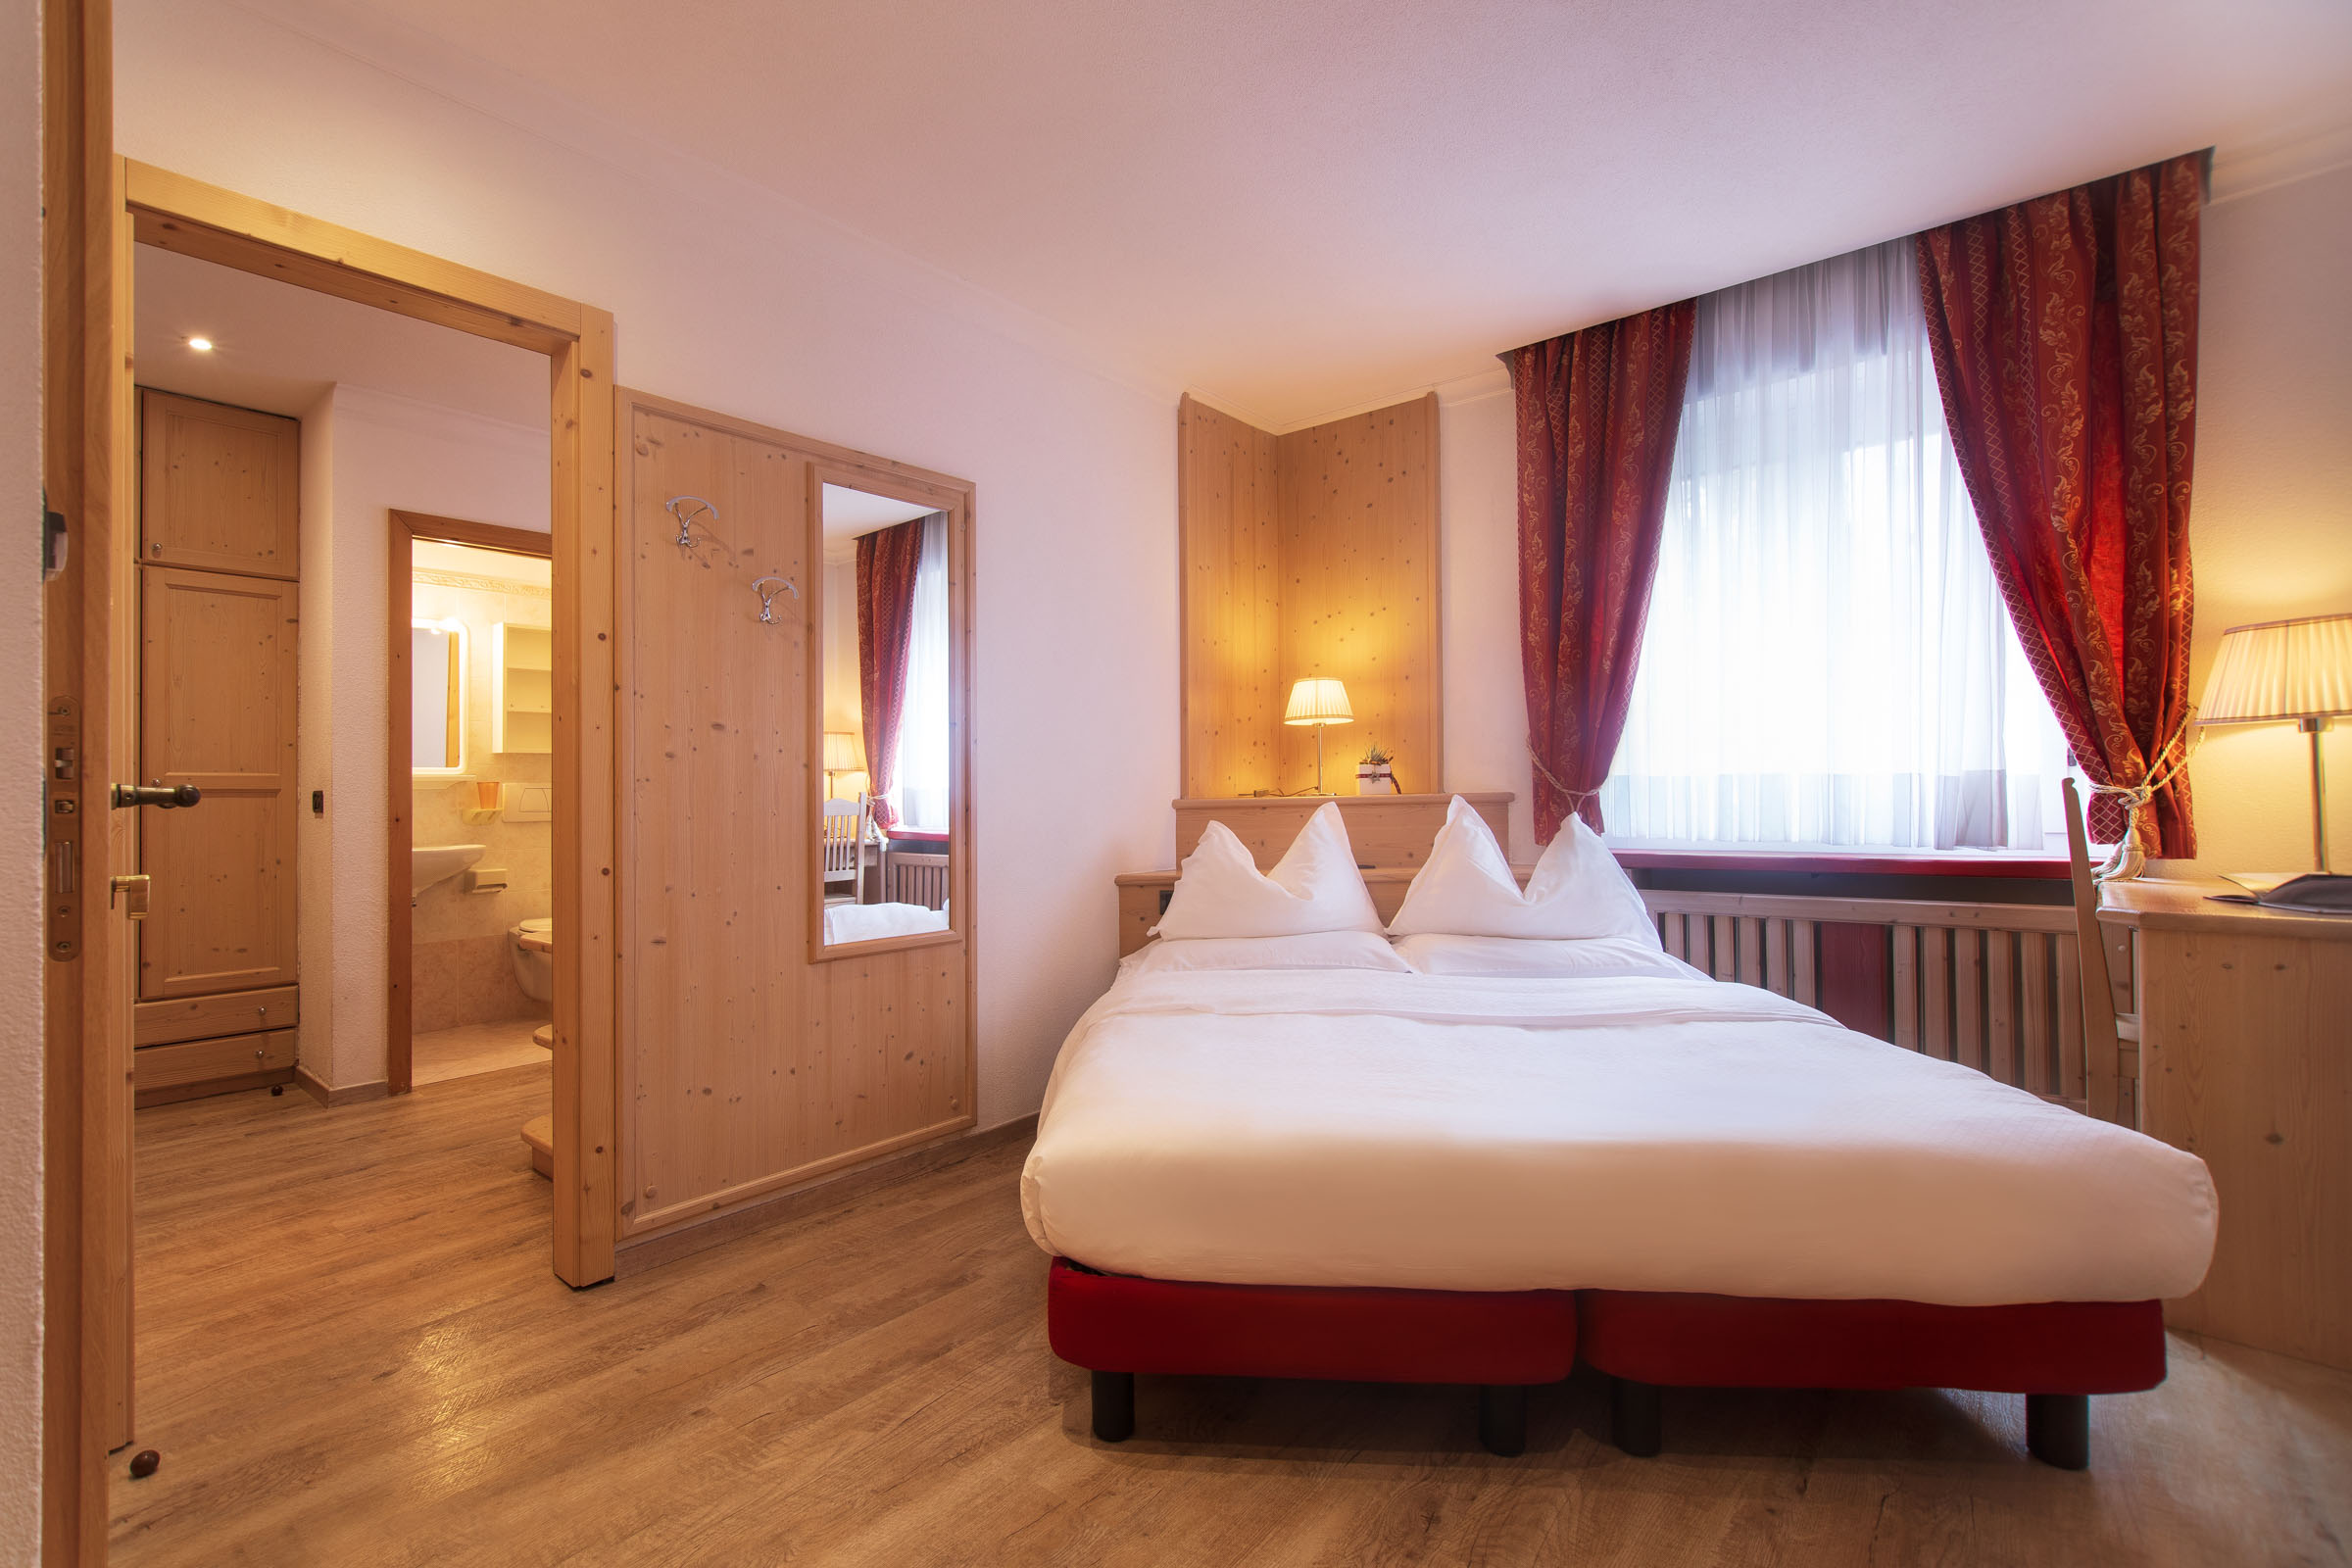 Family Suites Comfort in Hotel 3 Stelle Andalo | Hotel Nordik